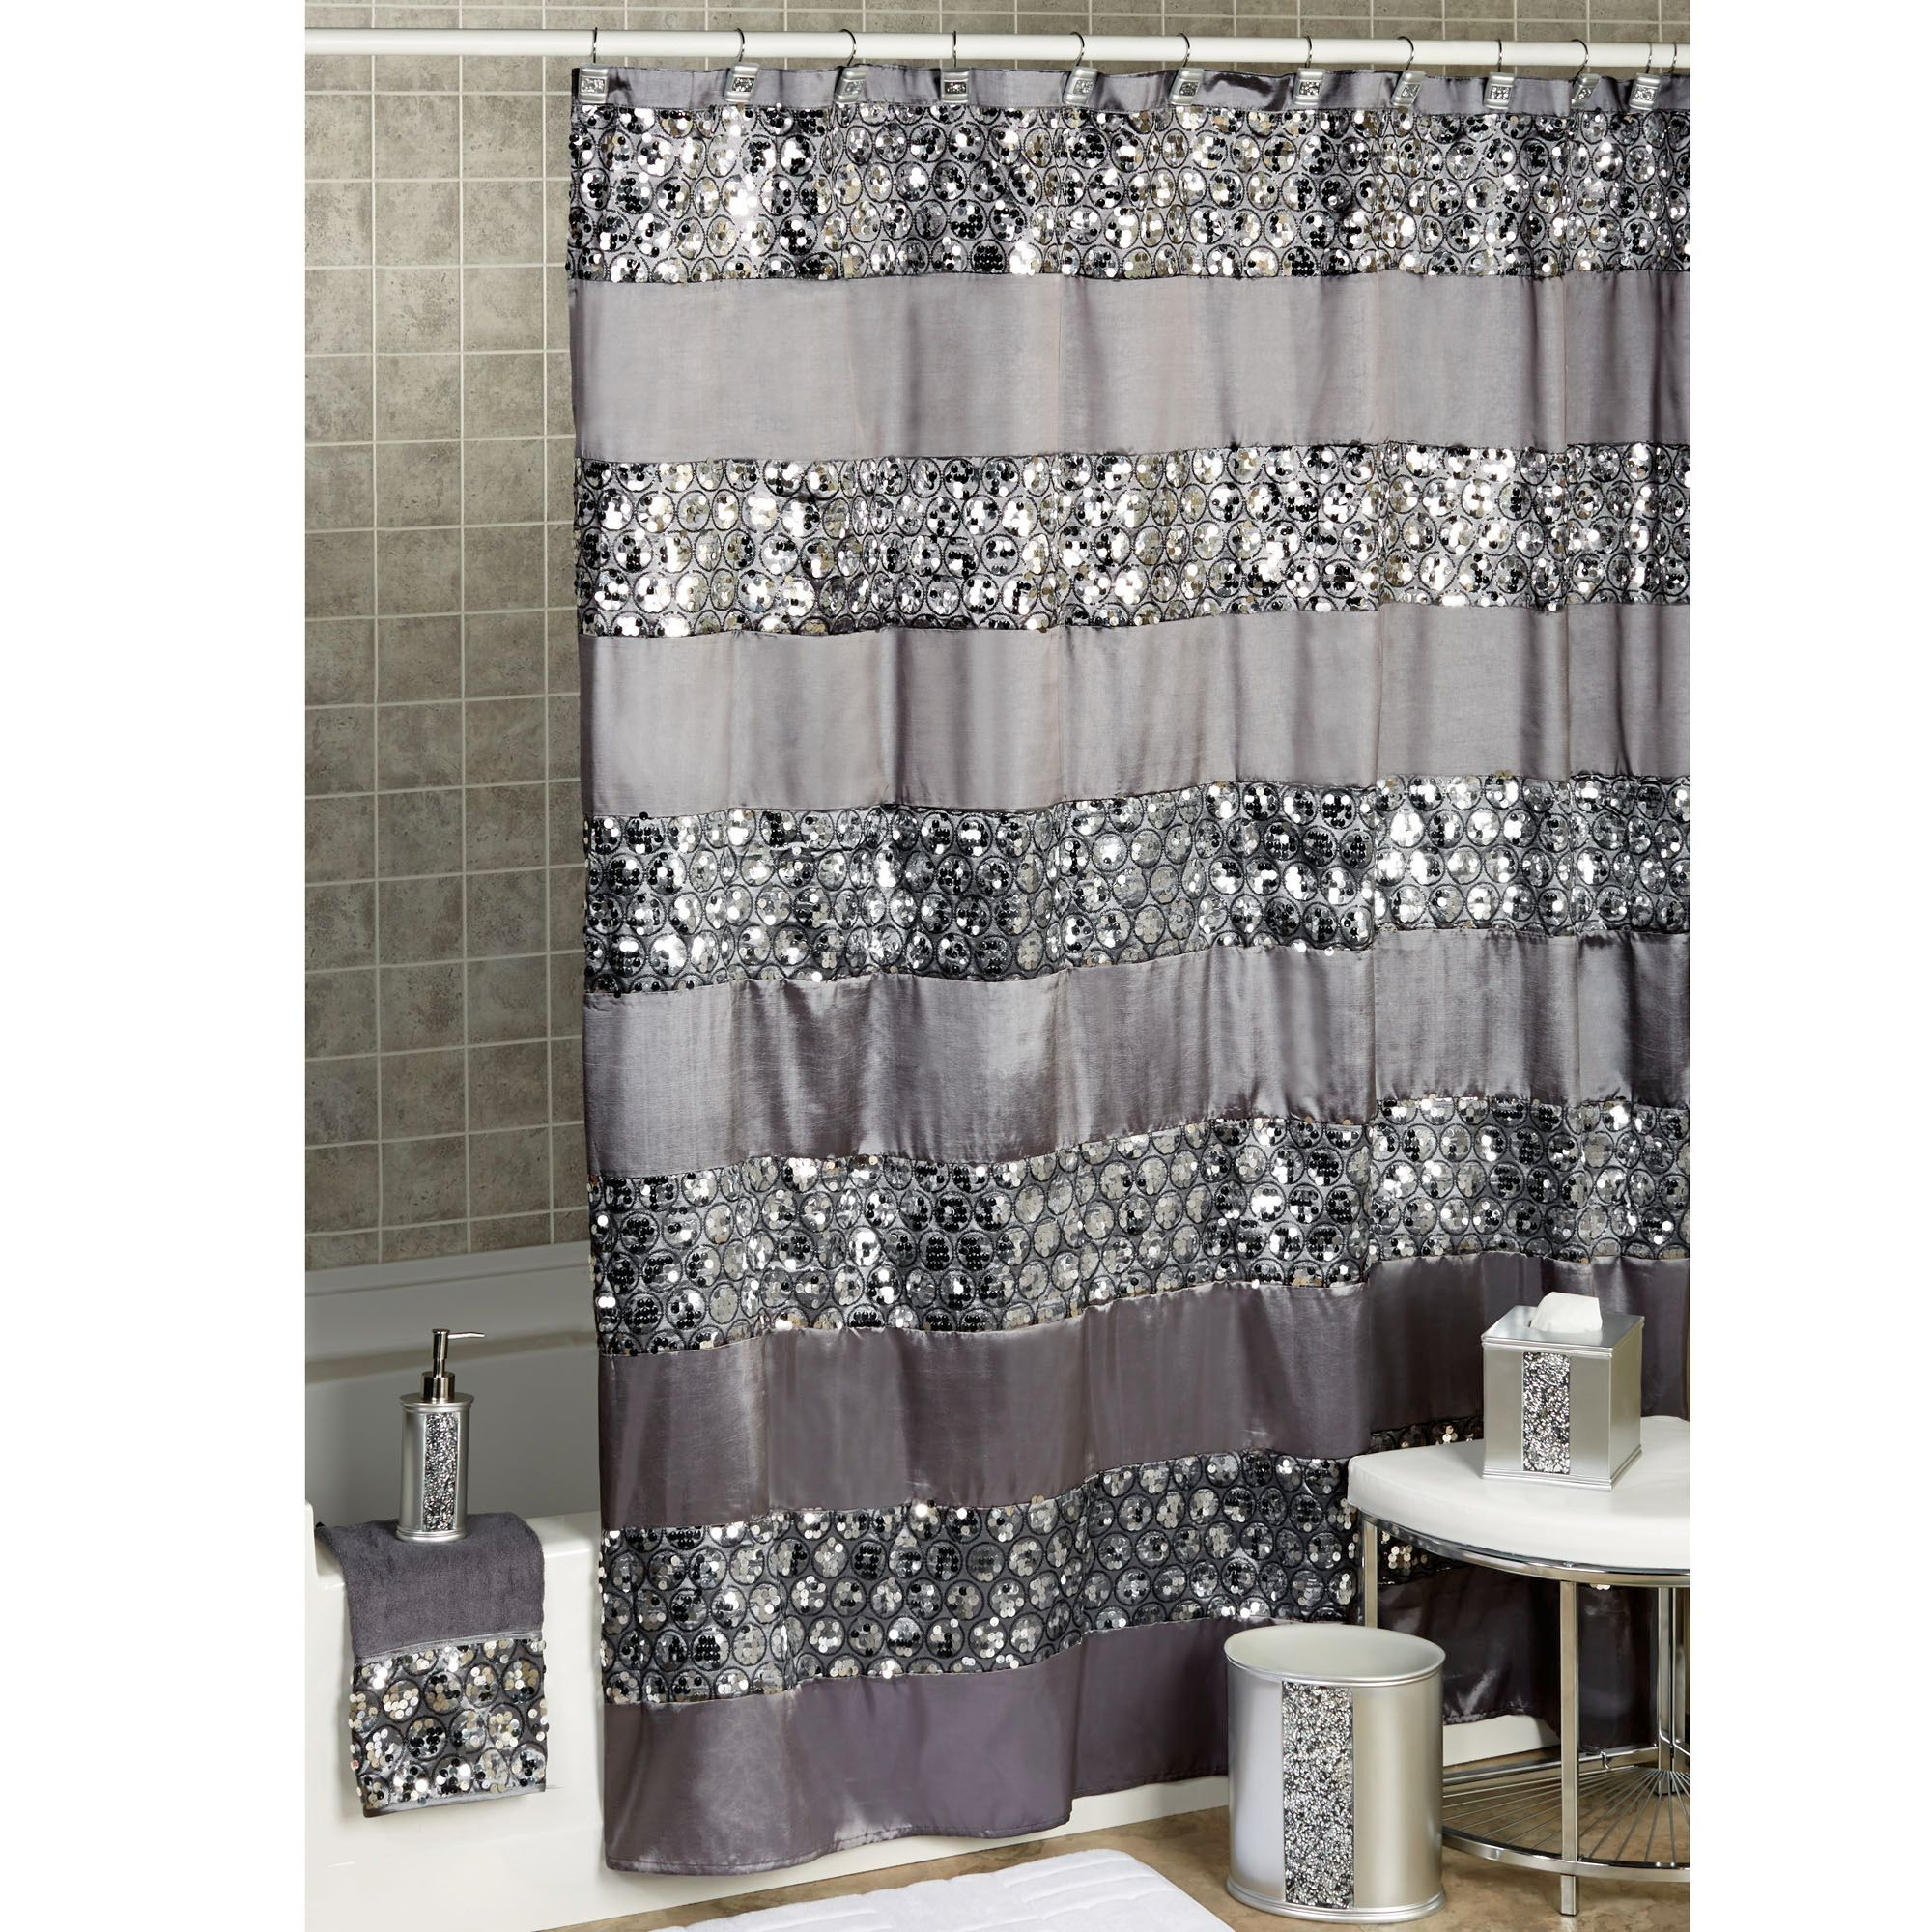 You Searched For Faucet With Images Silver Shower Curtain